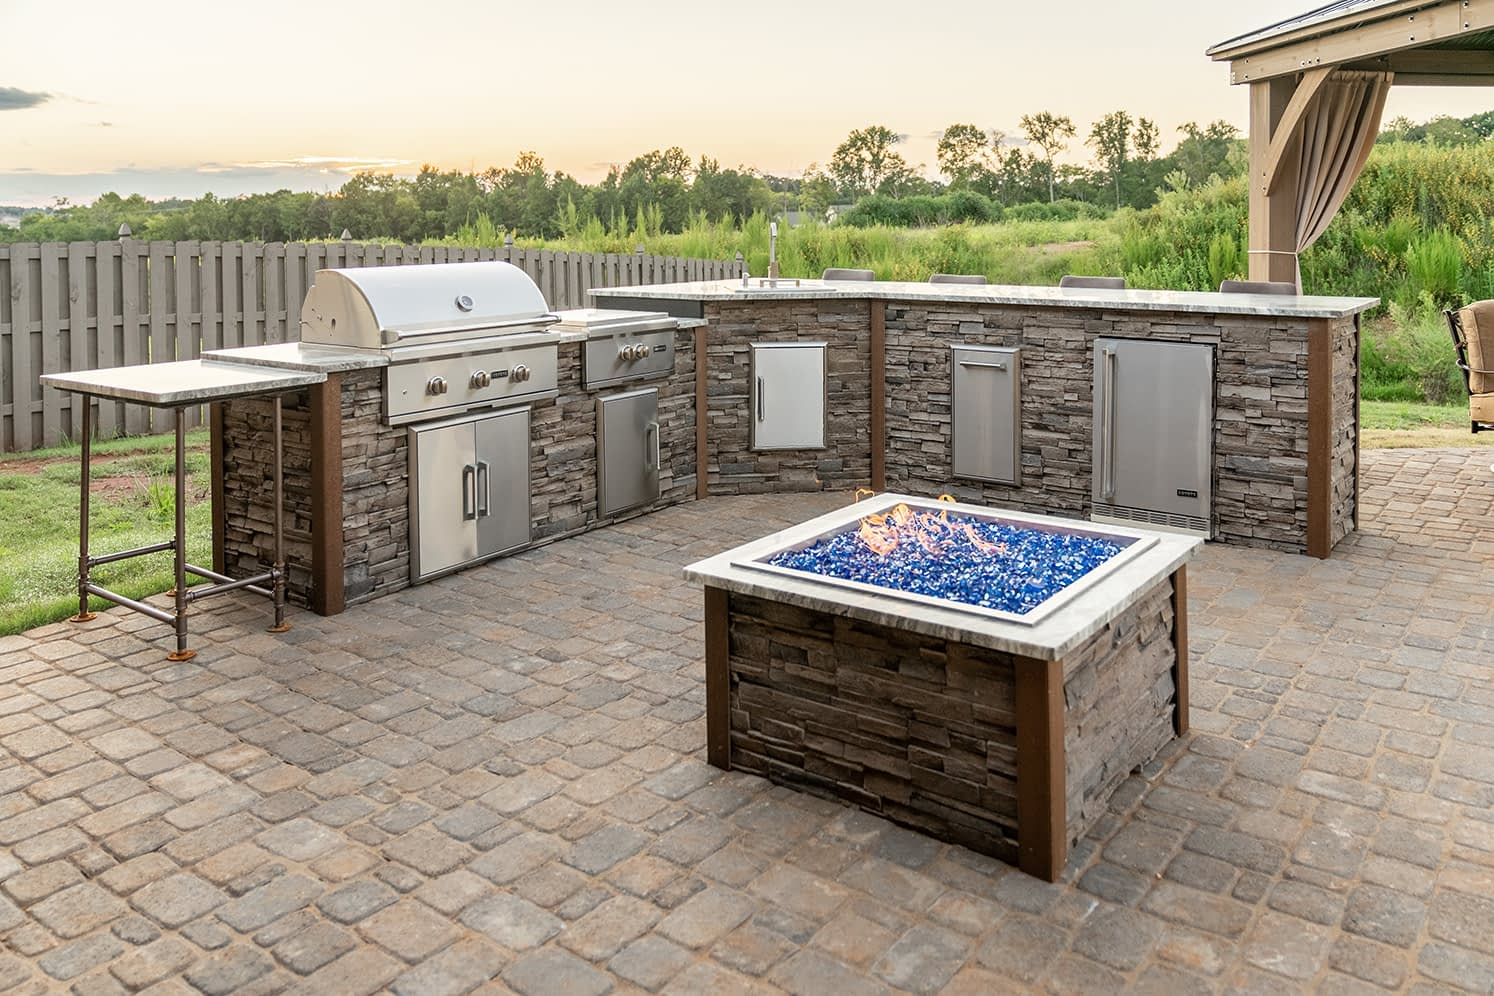 l shape outdoor kitchen idea with fire pit (1)